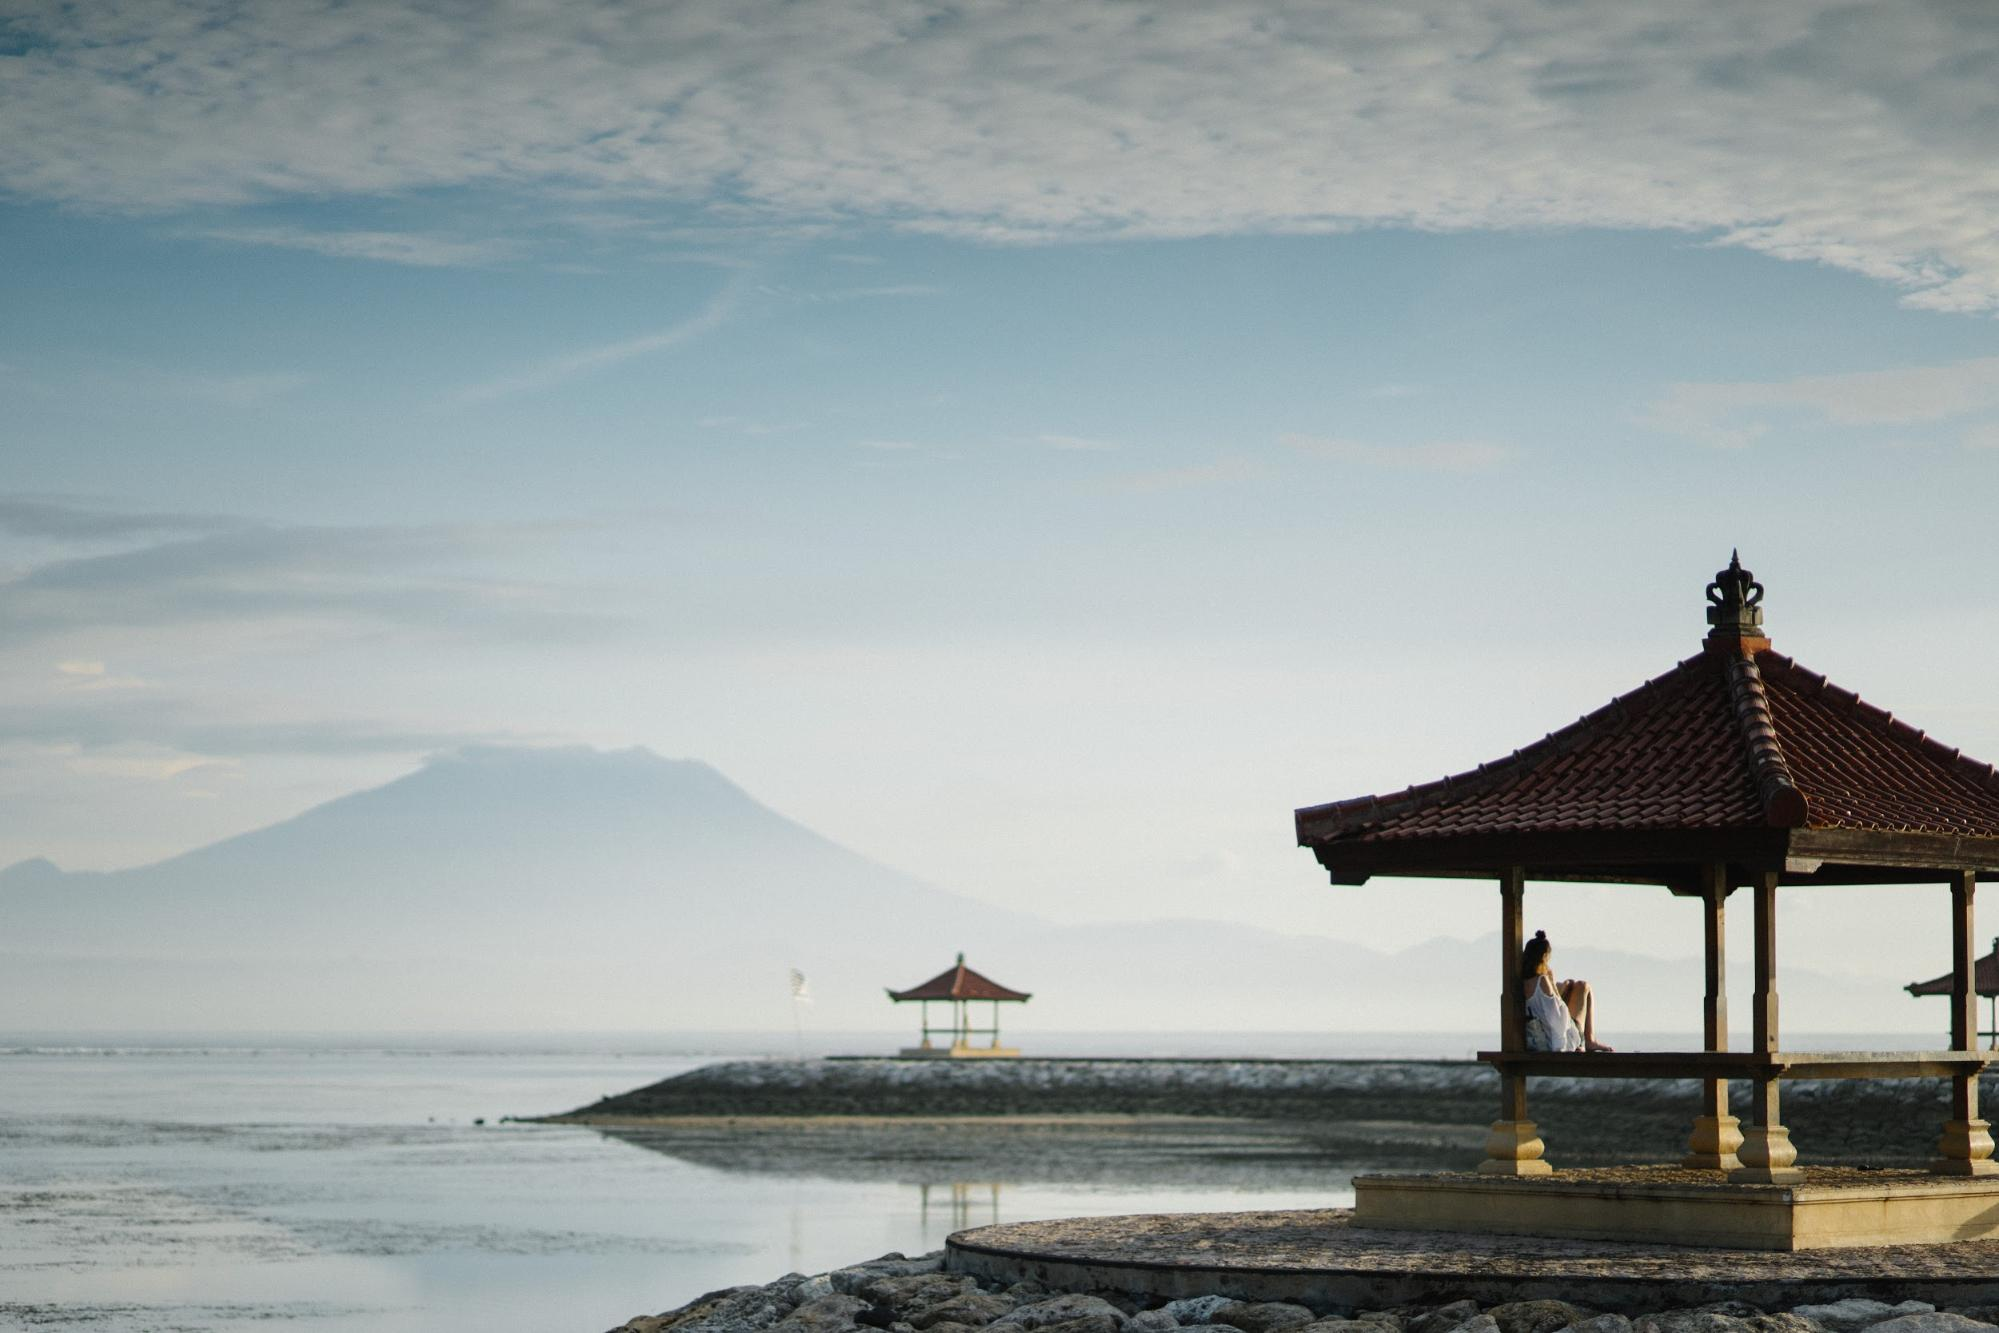 Gearing up for the Monsoon Season: 7 Activities For a Rainy Day in Bali